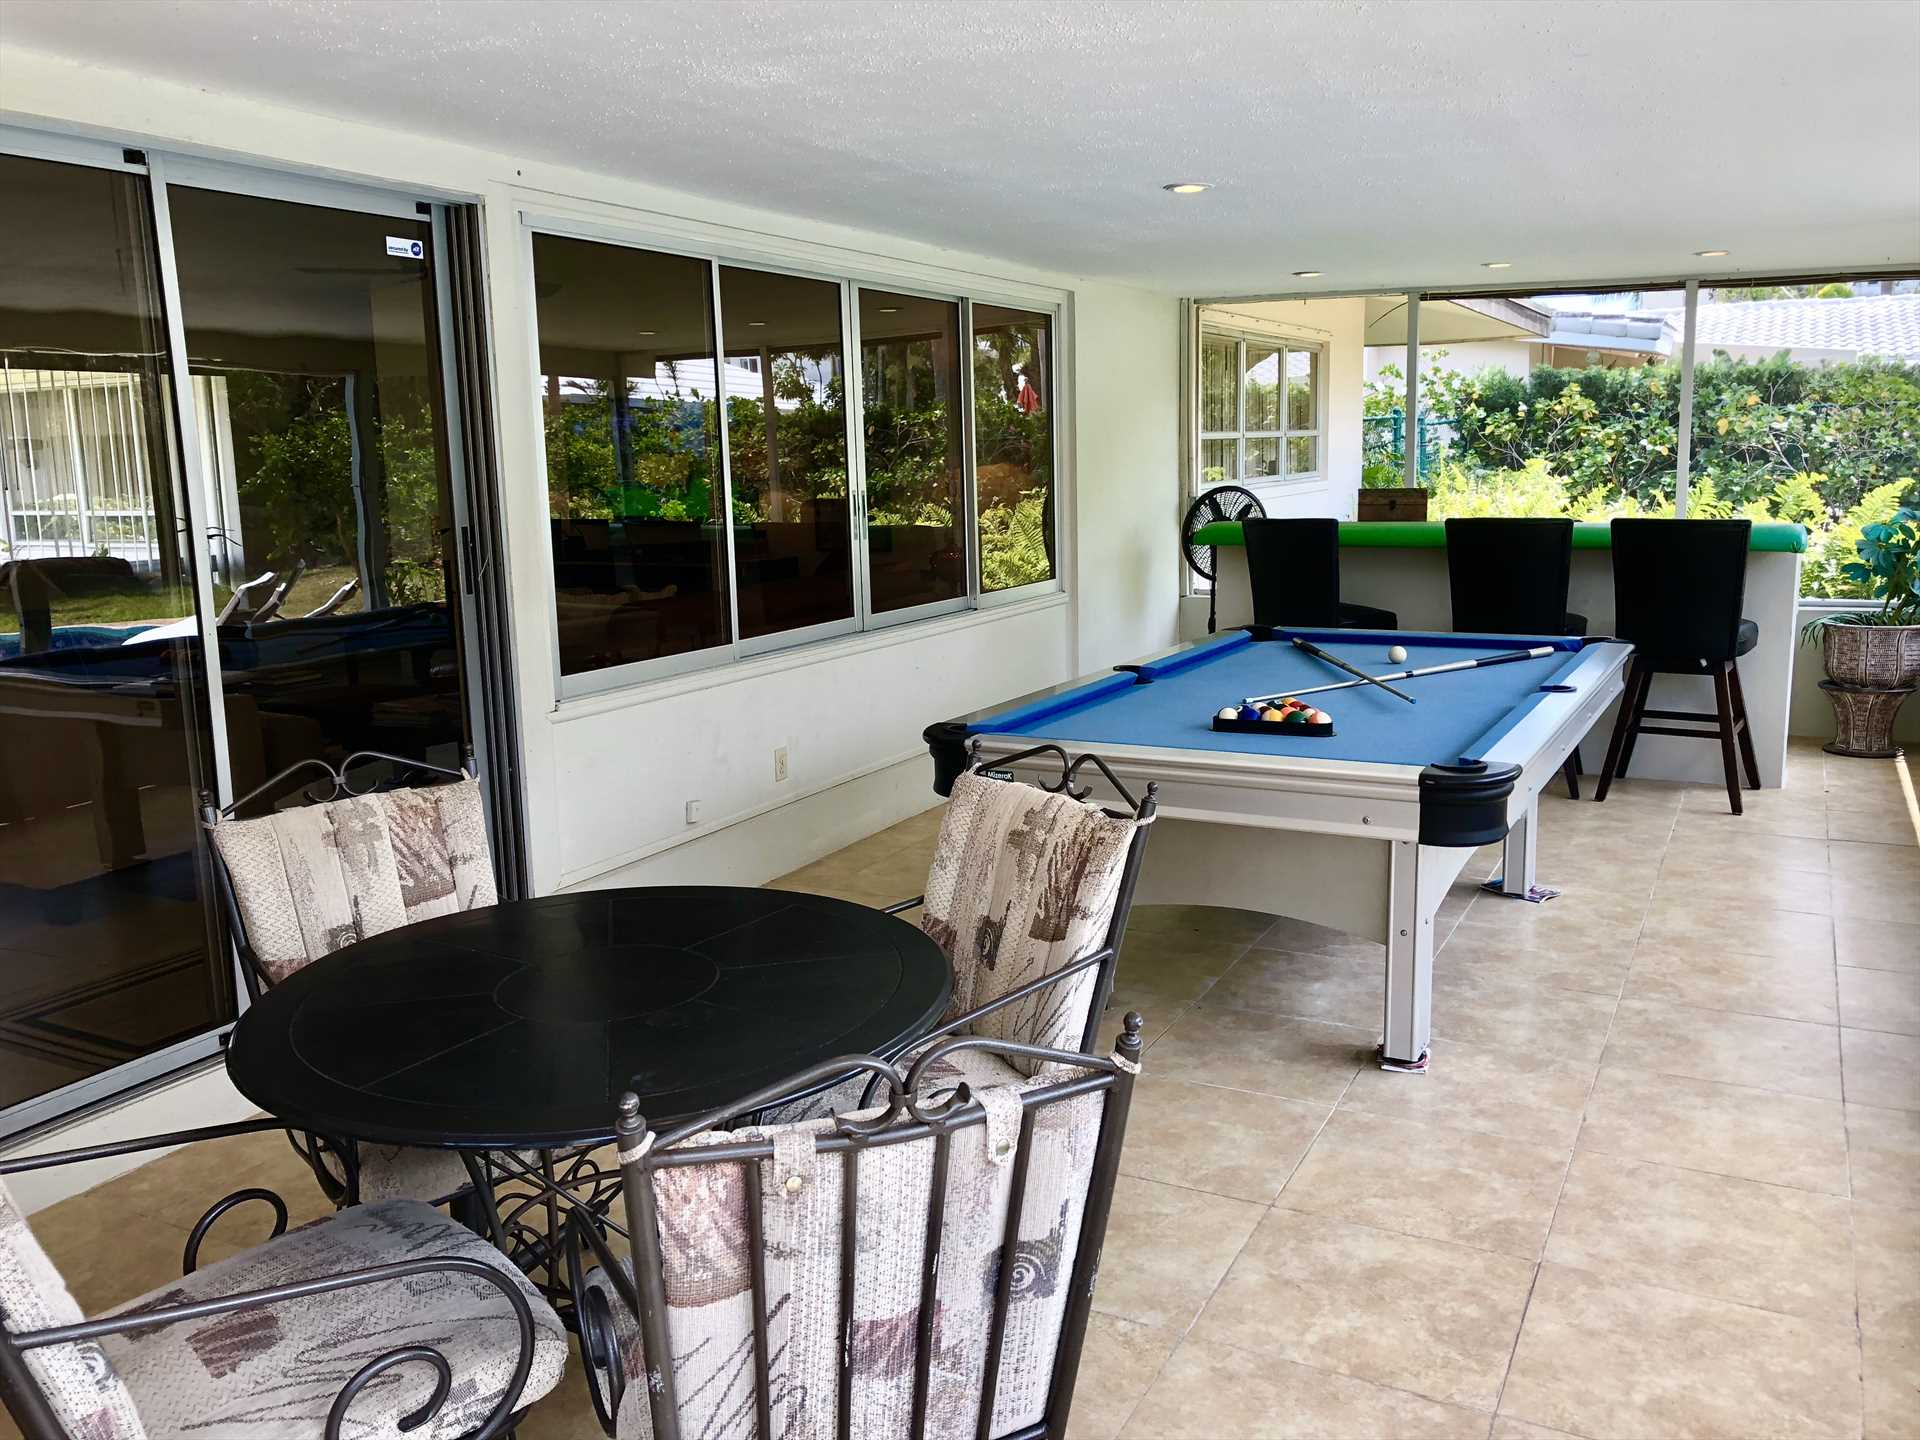 Lanai features card table and bar area.